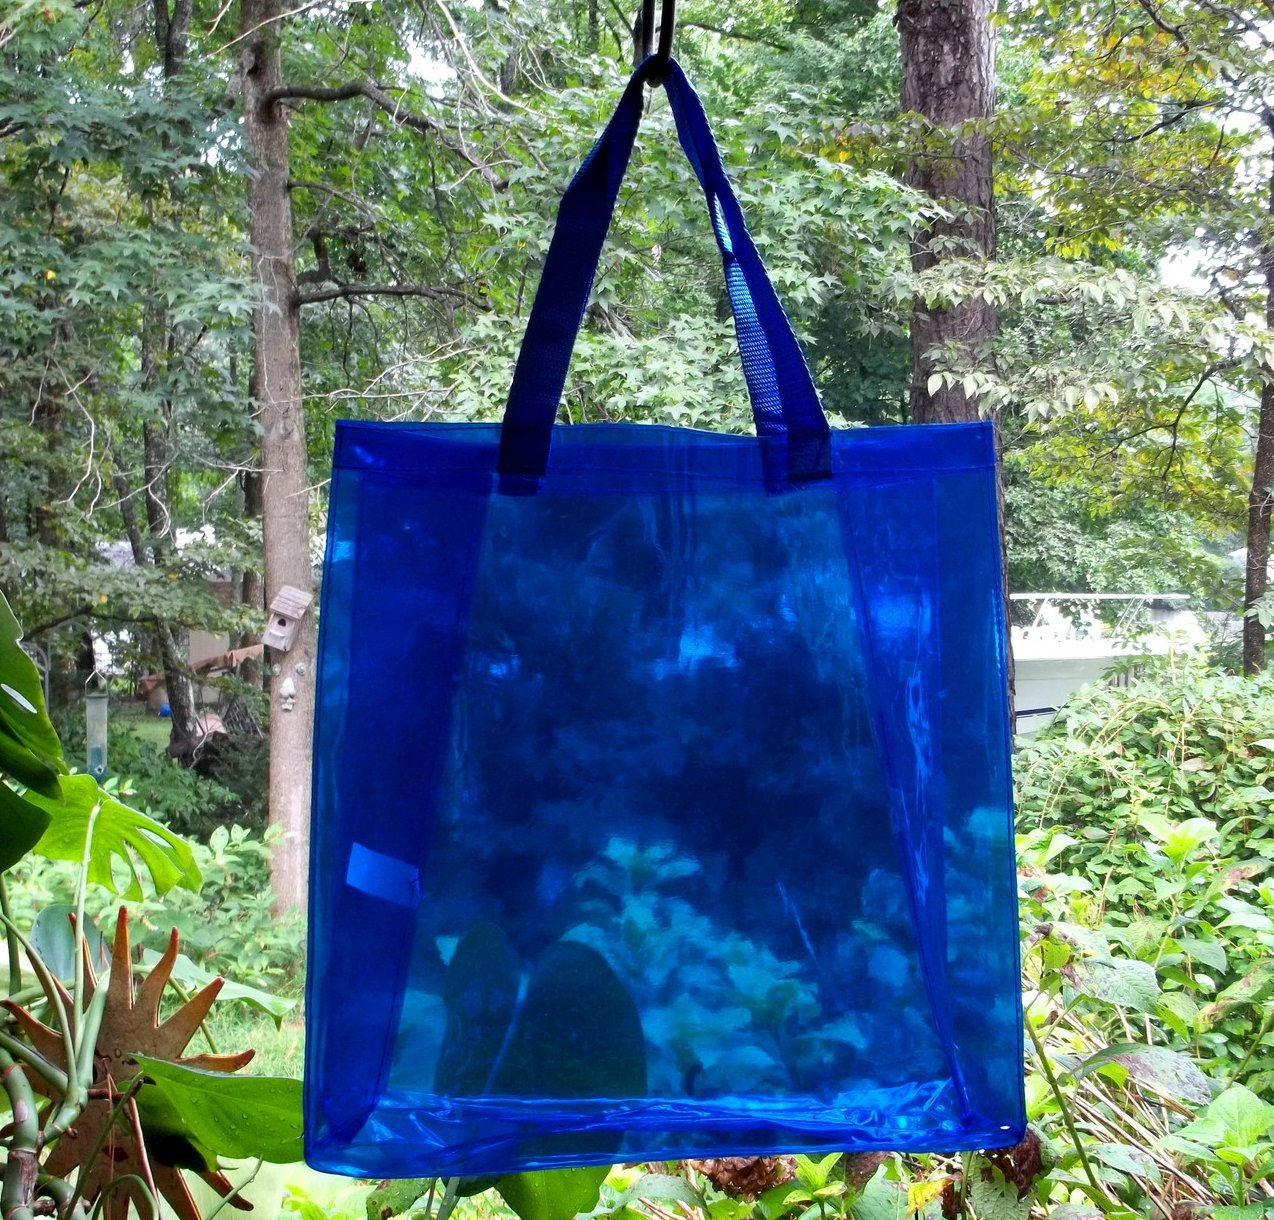 Image 1 of Tote Bag Vinyl Shopping Beach Travel Clear Sapphire Blue